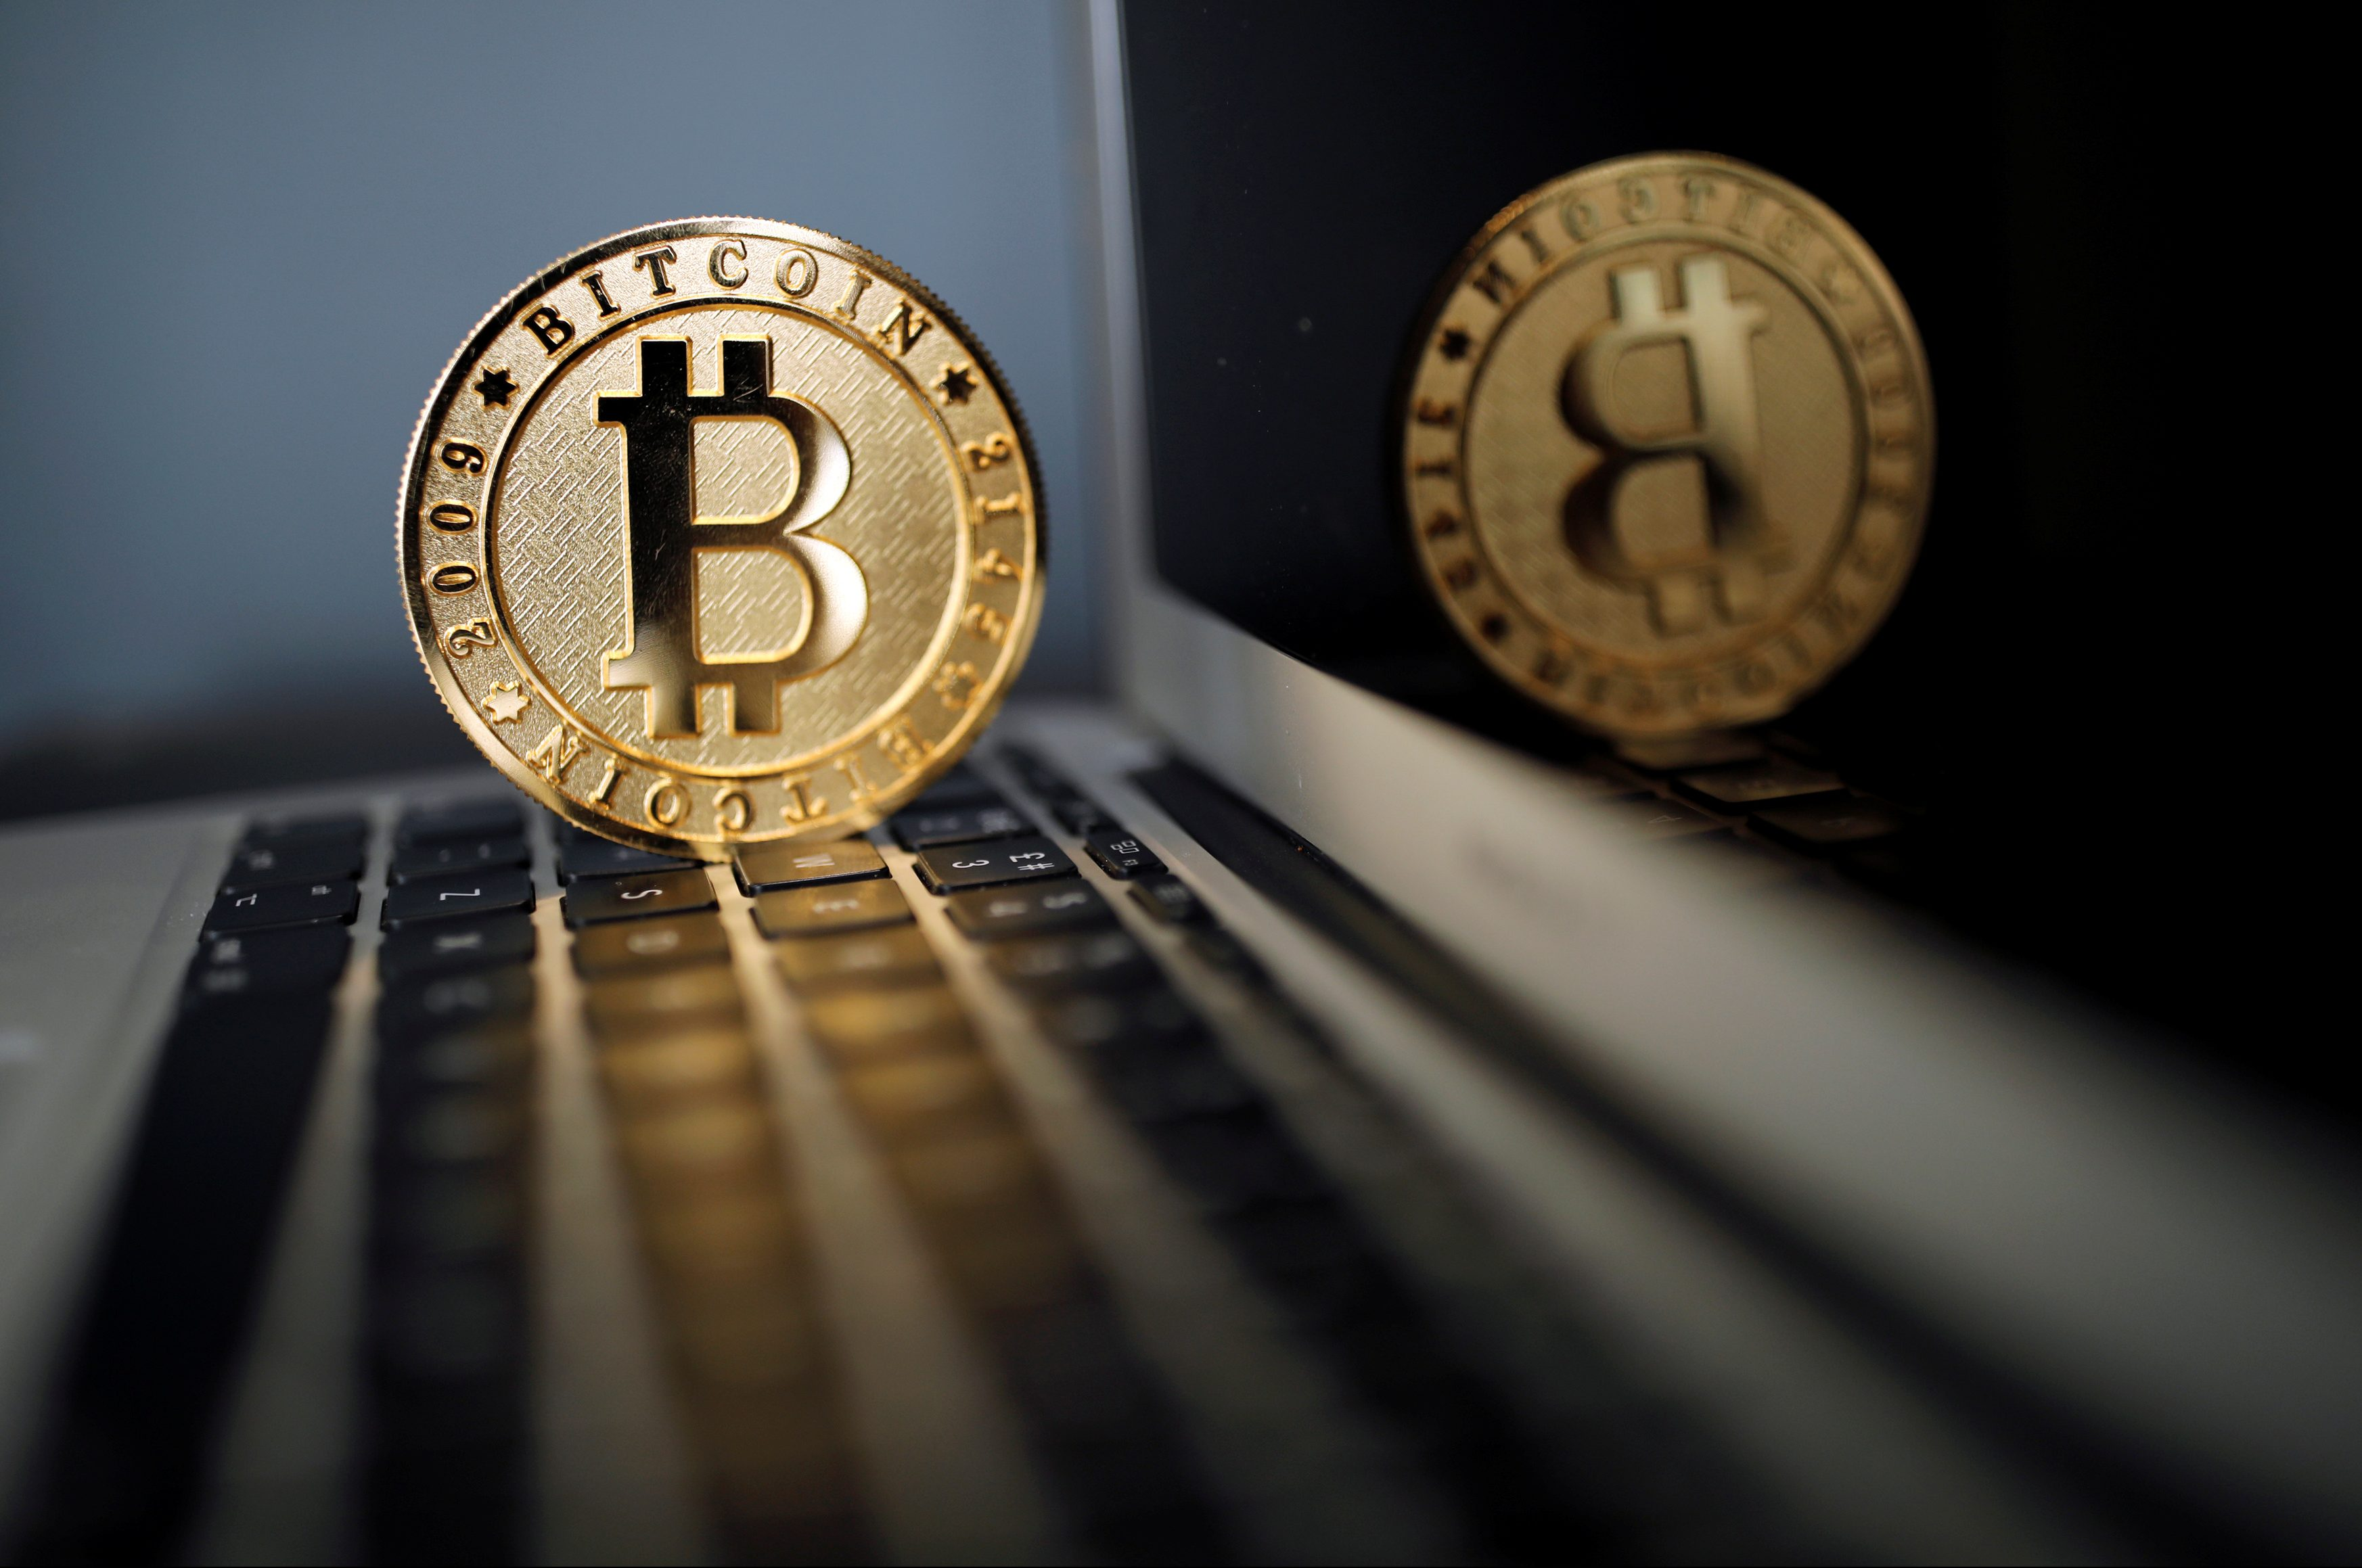 A Bitcoin (virtual currency) coin is seen in an illustration picture taken at La Maison du Bitcoin in Paris, France, June 23, 2017. REUTERS/Benoit Tessier/Illustration - RC14EAB5E9F0